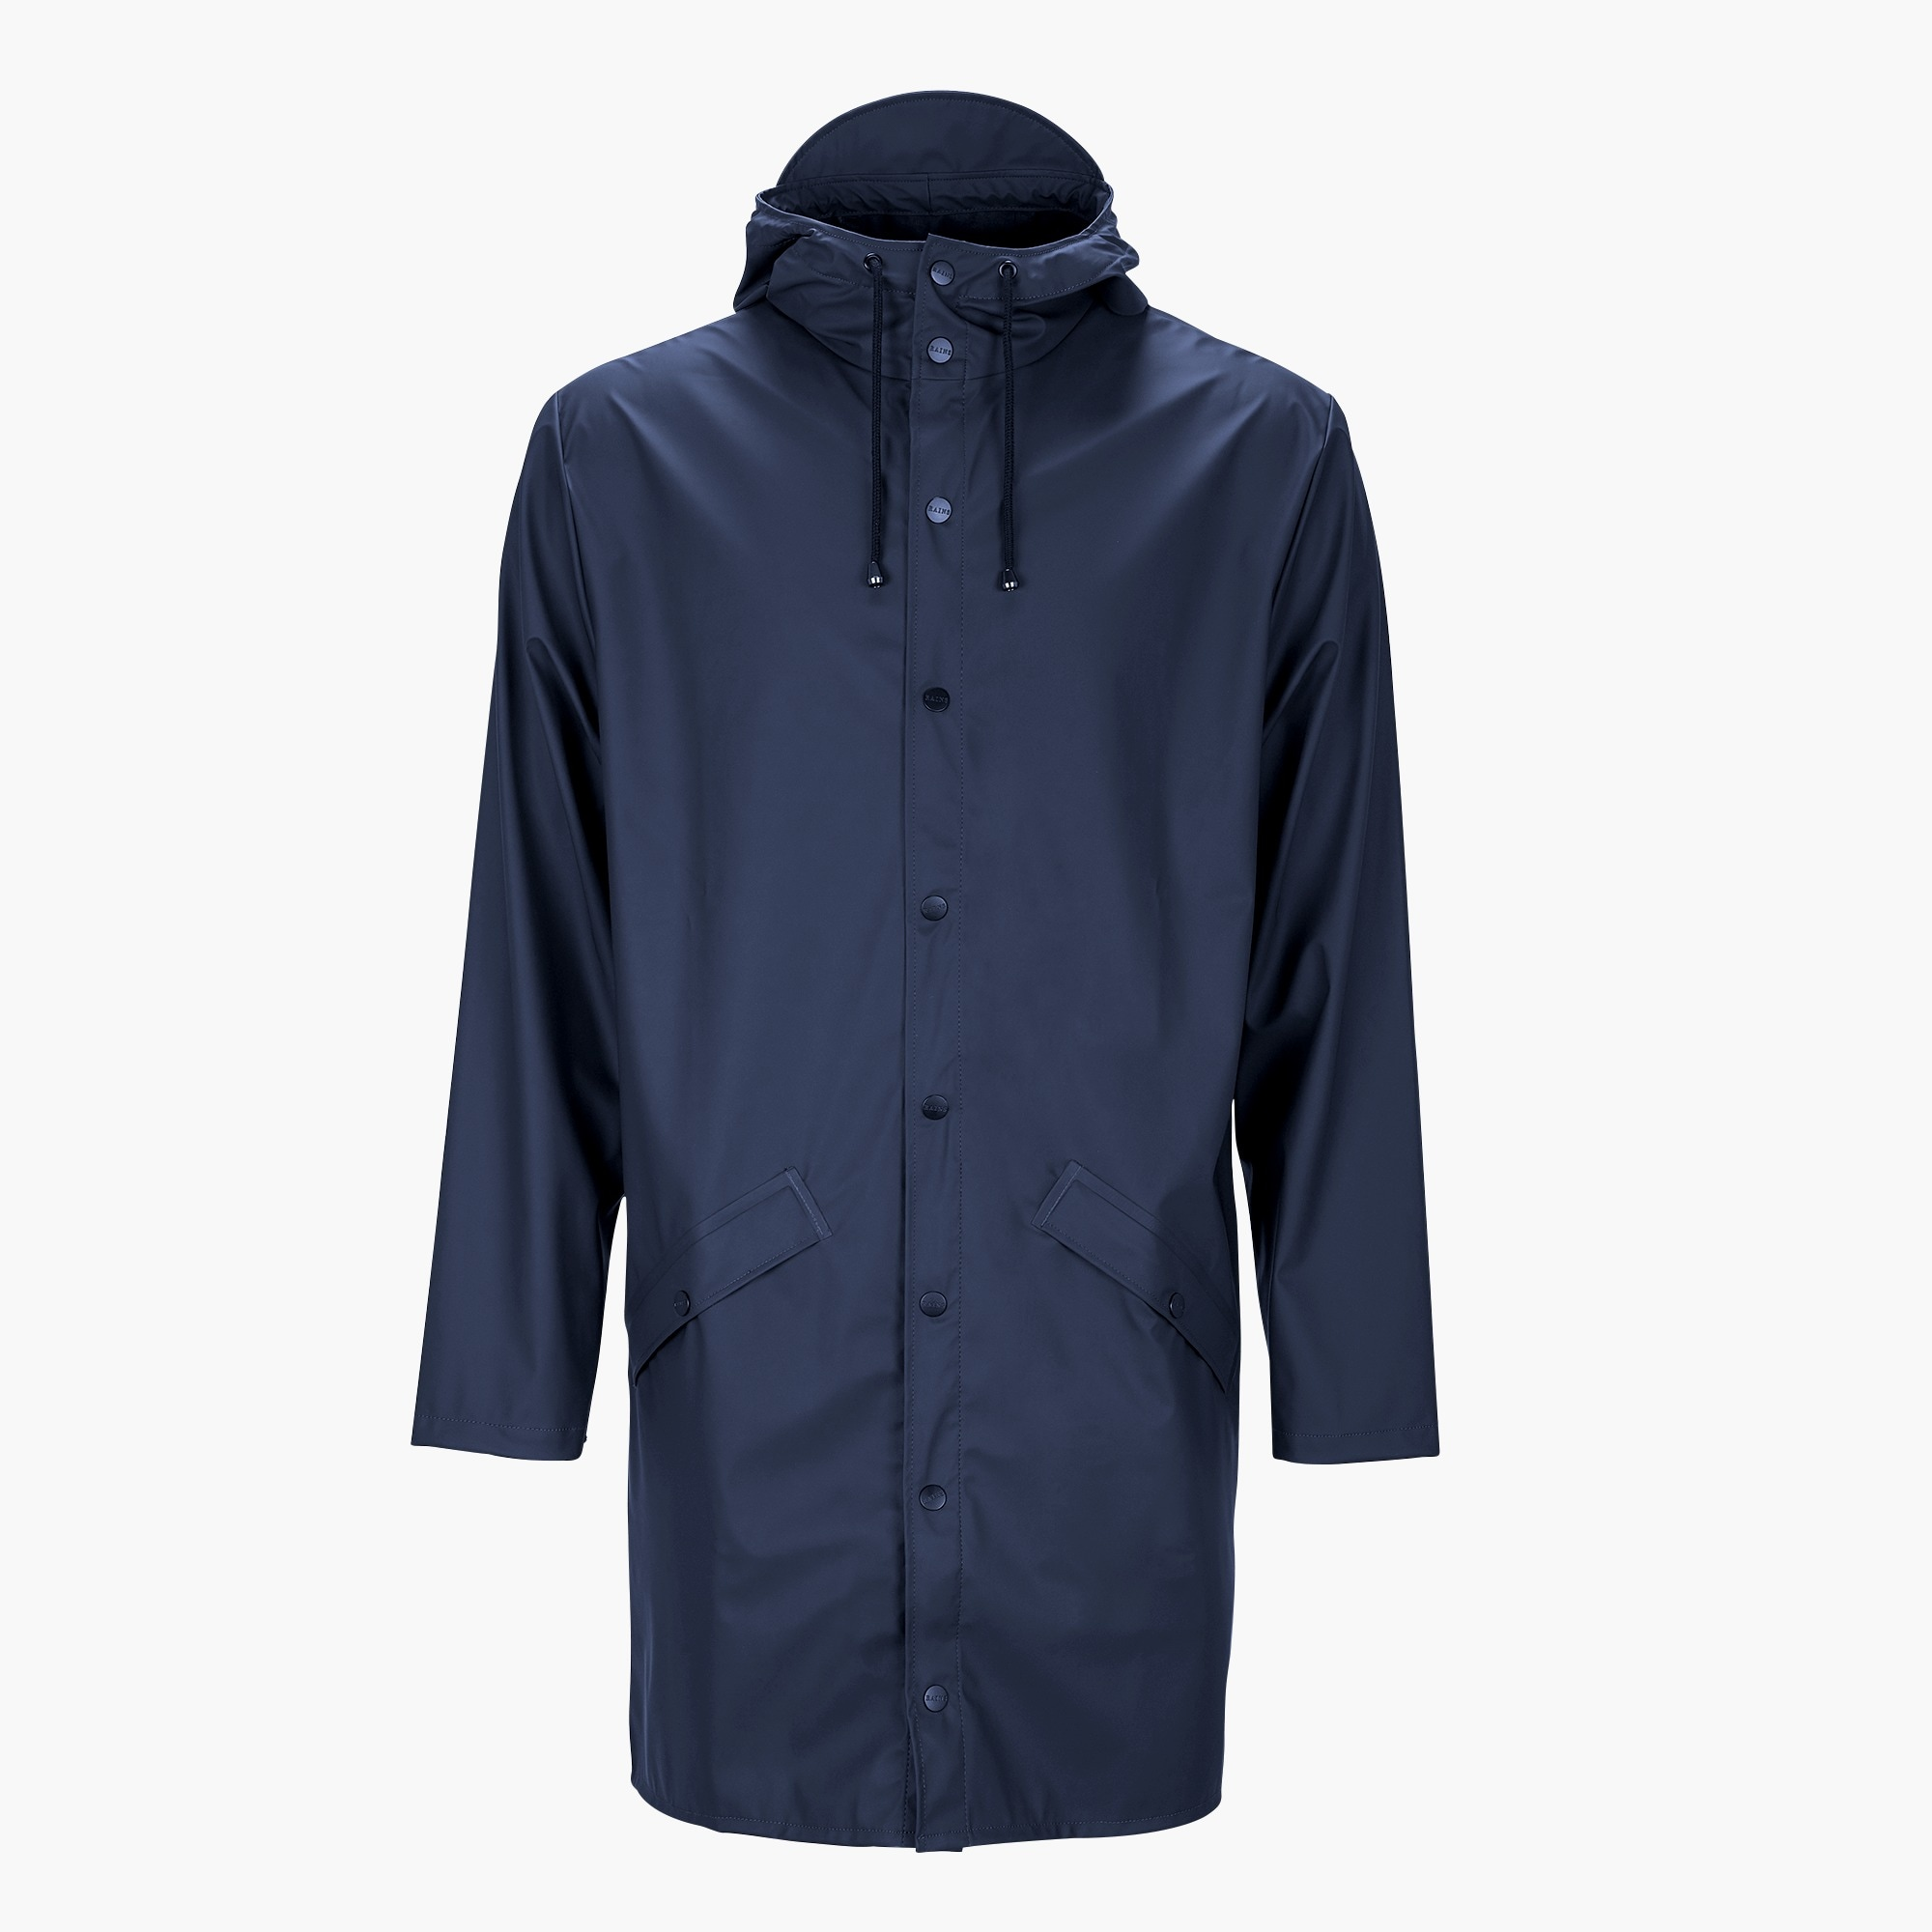 mens Unisex RAINS® long jacket